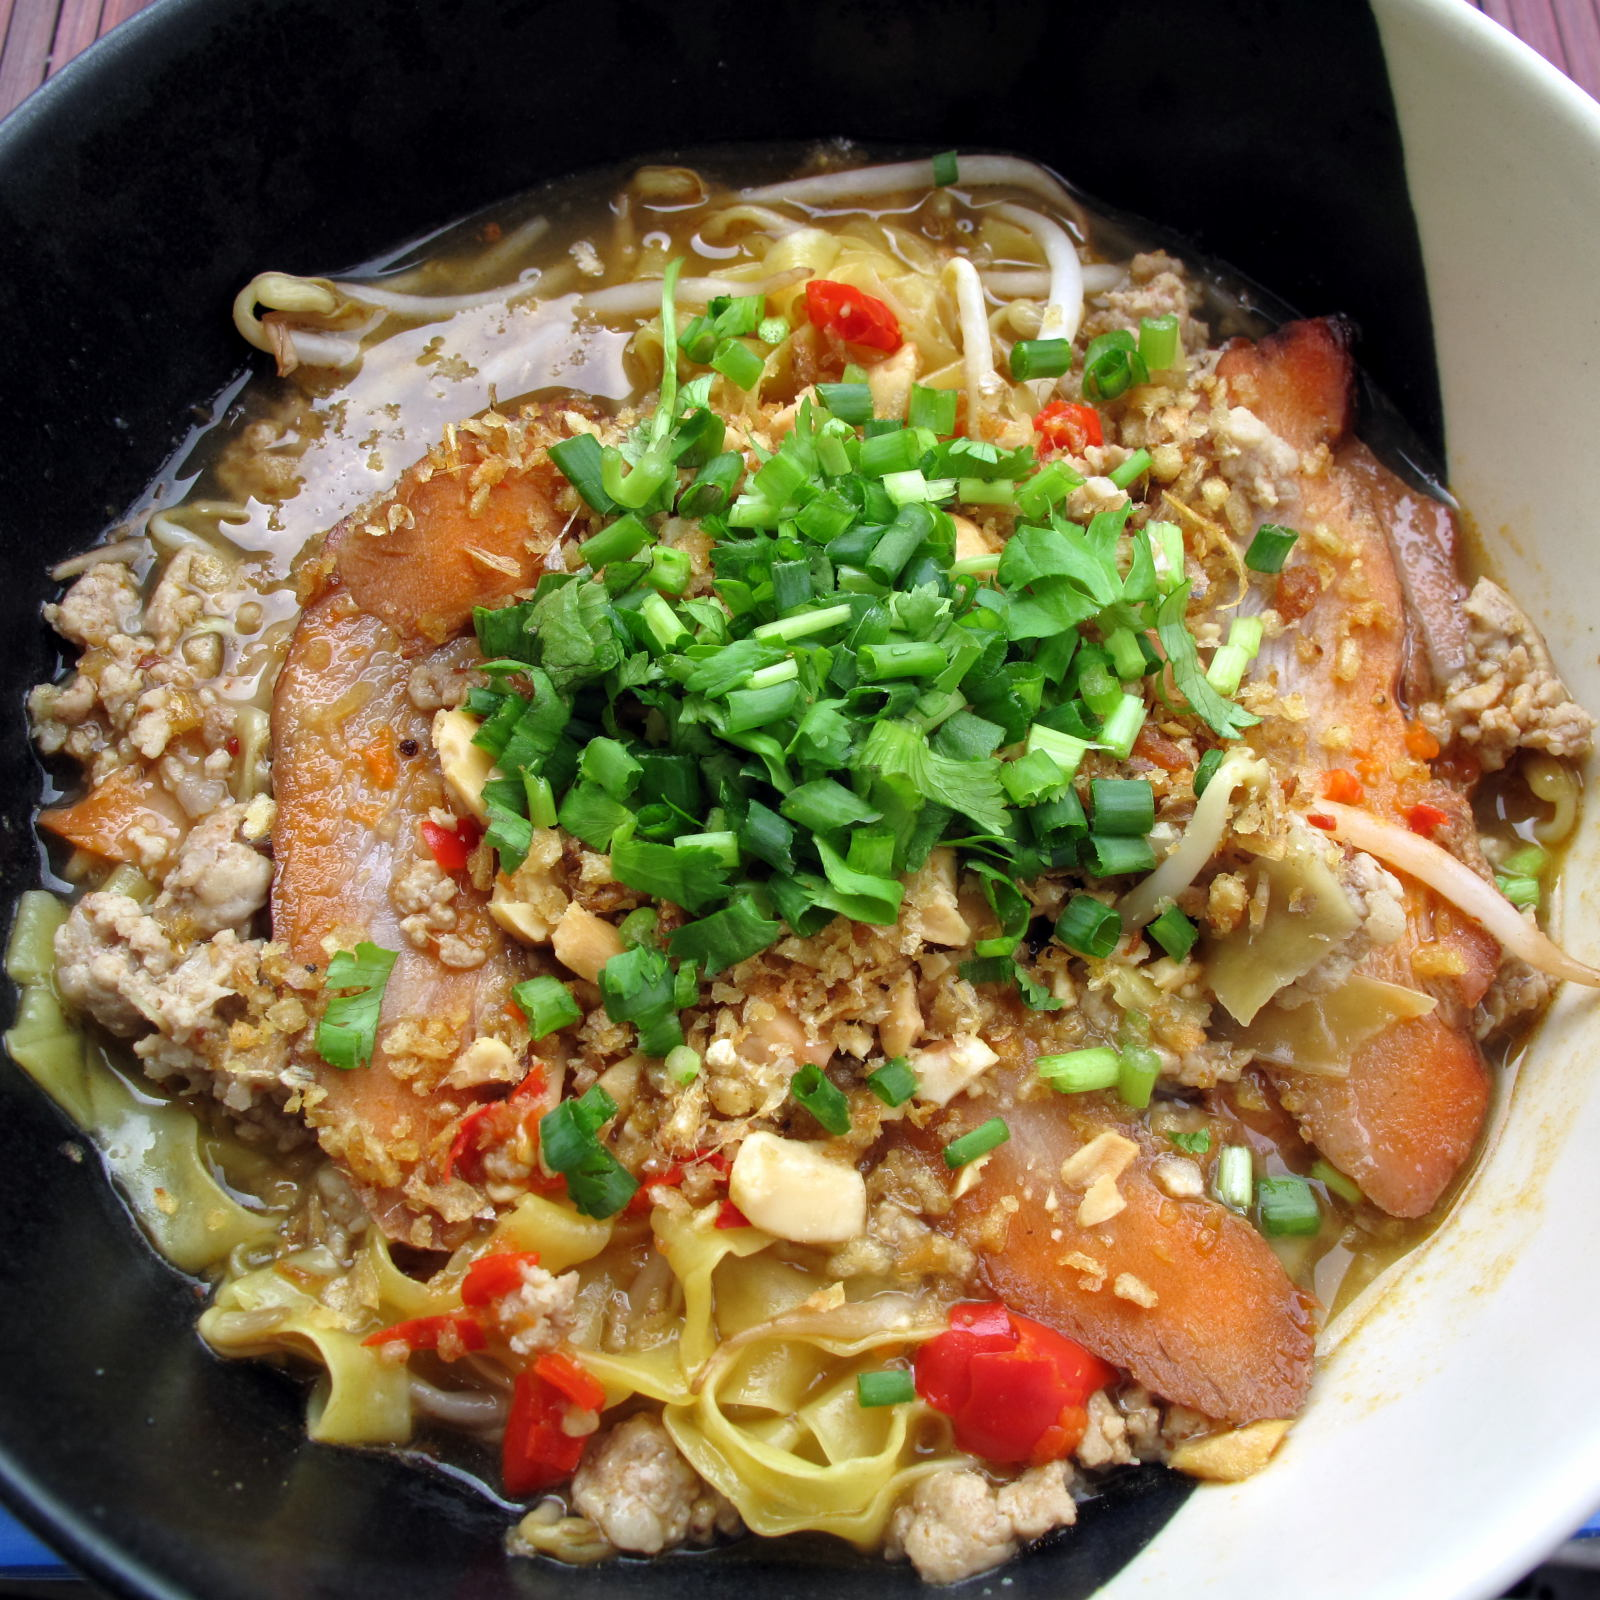 Spicy Tom Yum Noodles